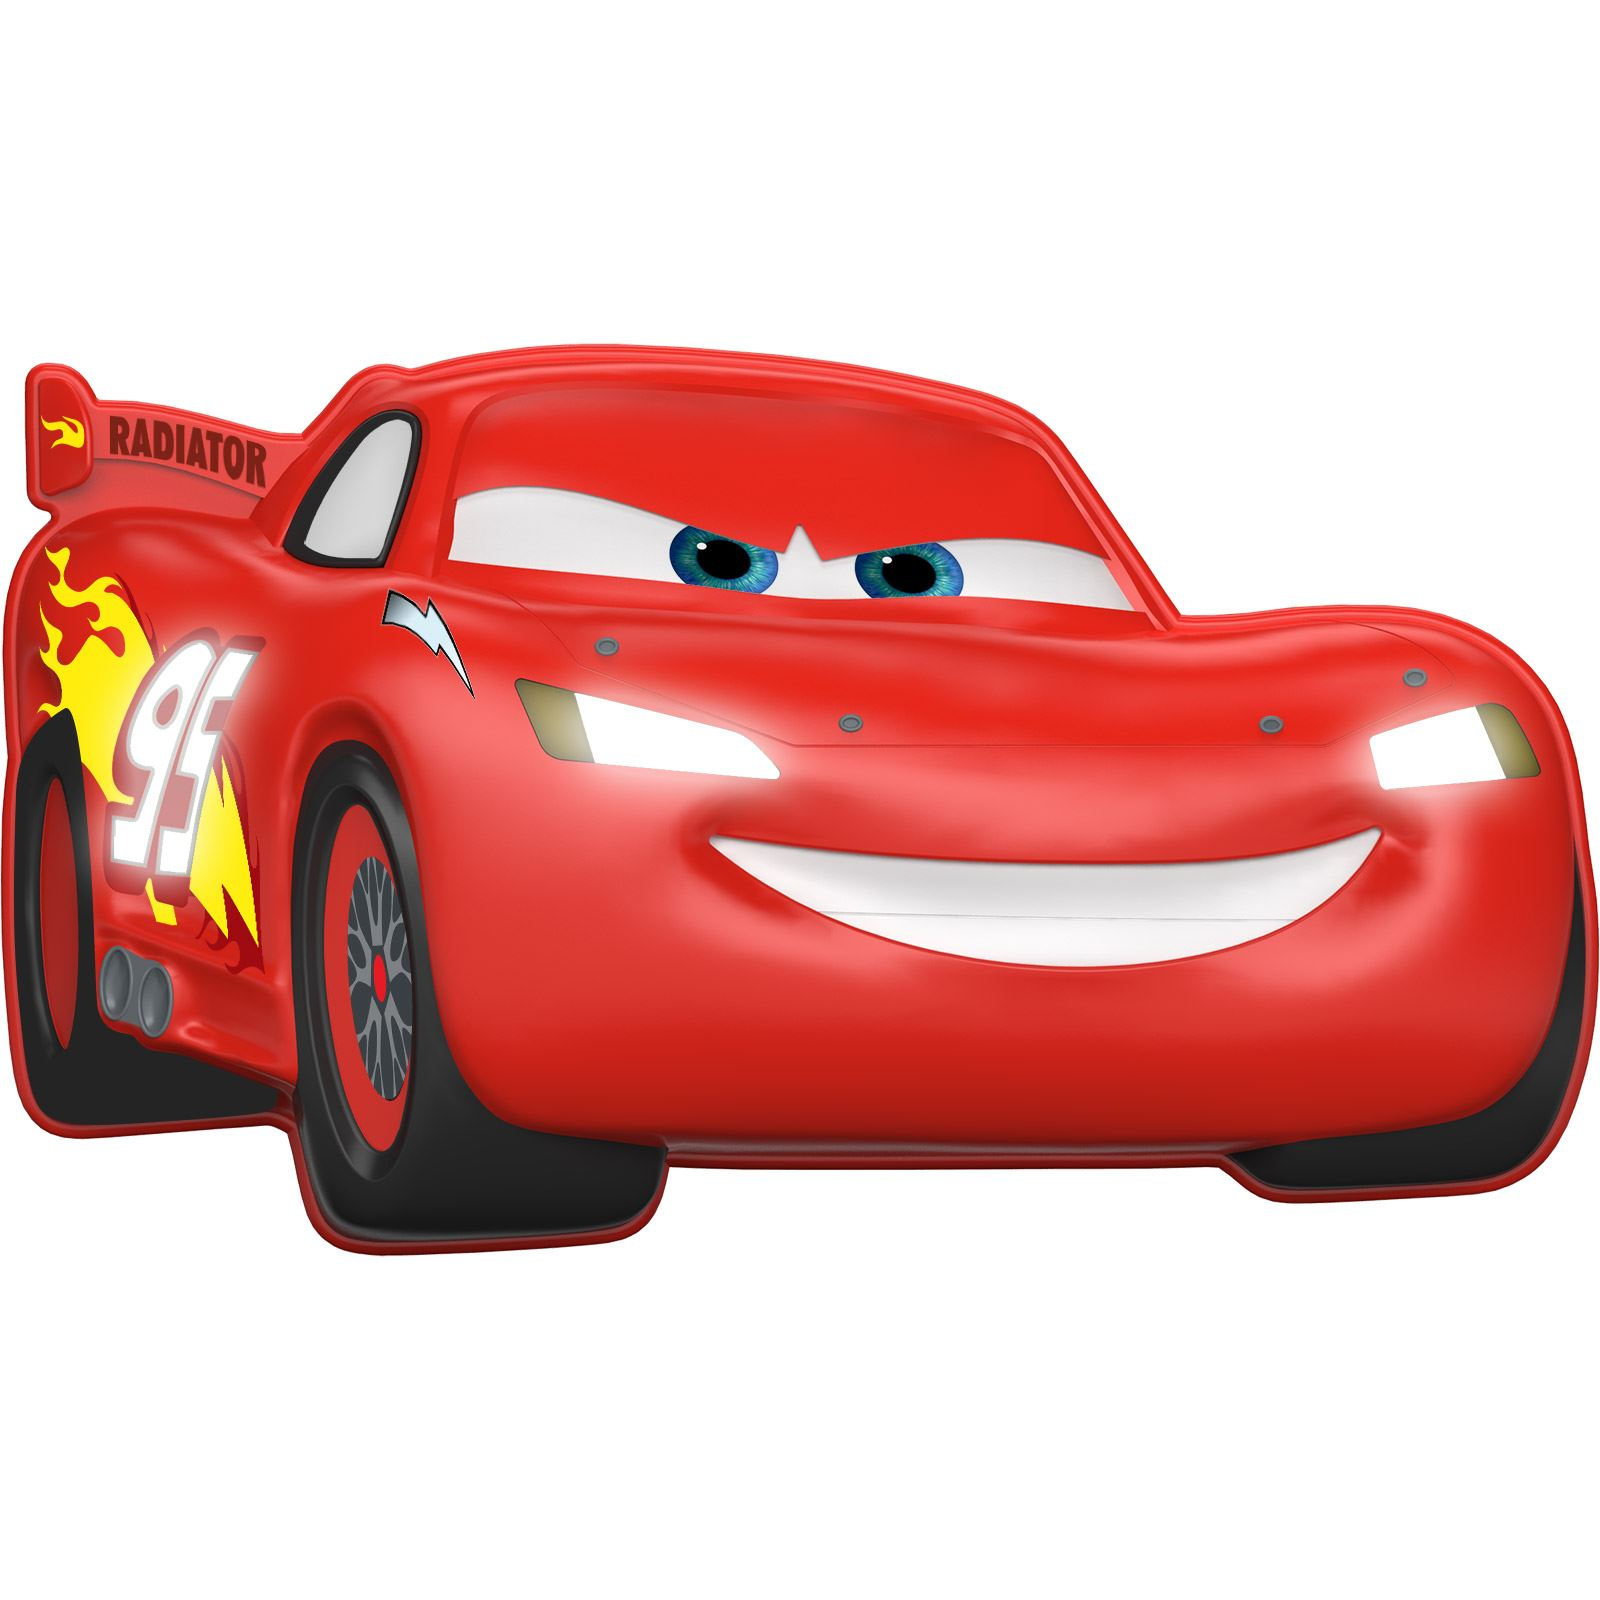 Disney cars kinderzimmer zubeh?r  DISNEY CARS LIGHTNING MCQUEEN 3D